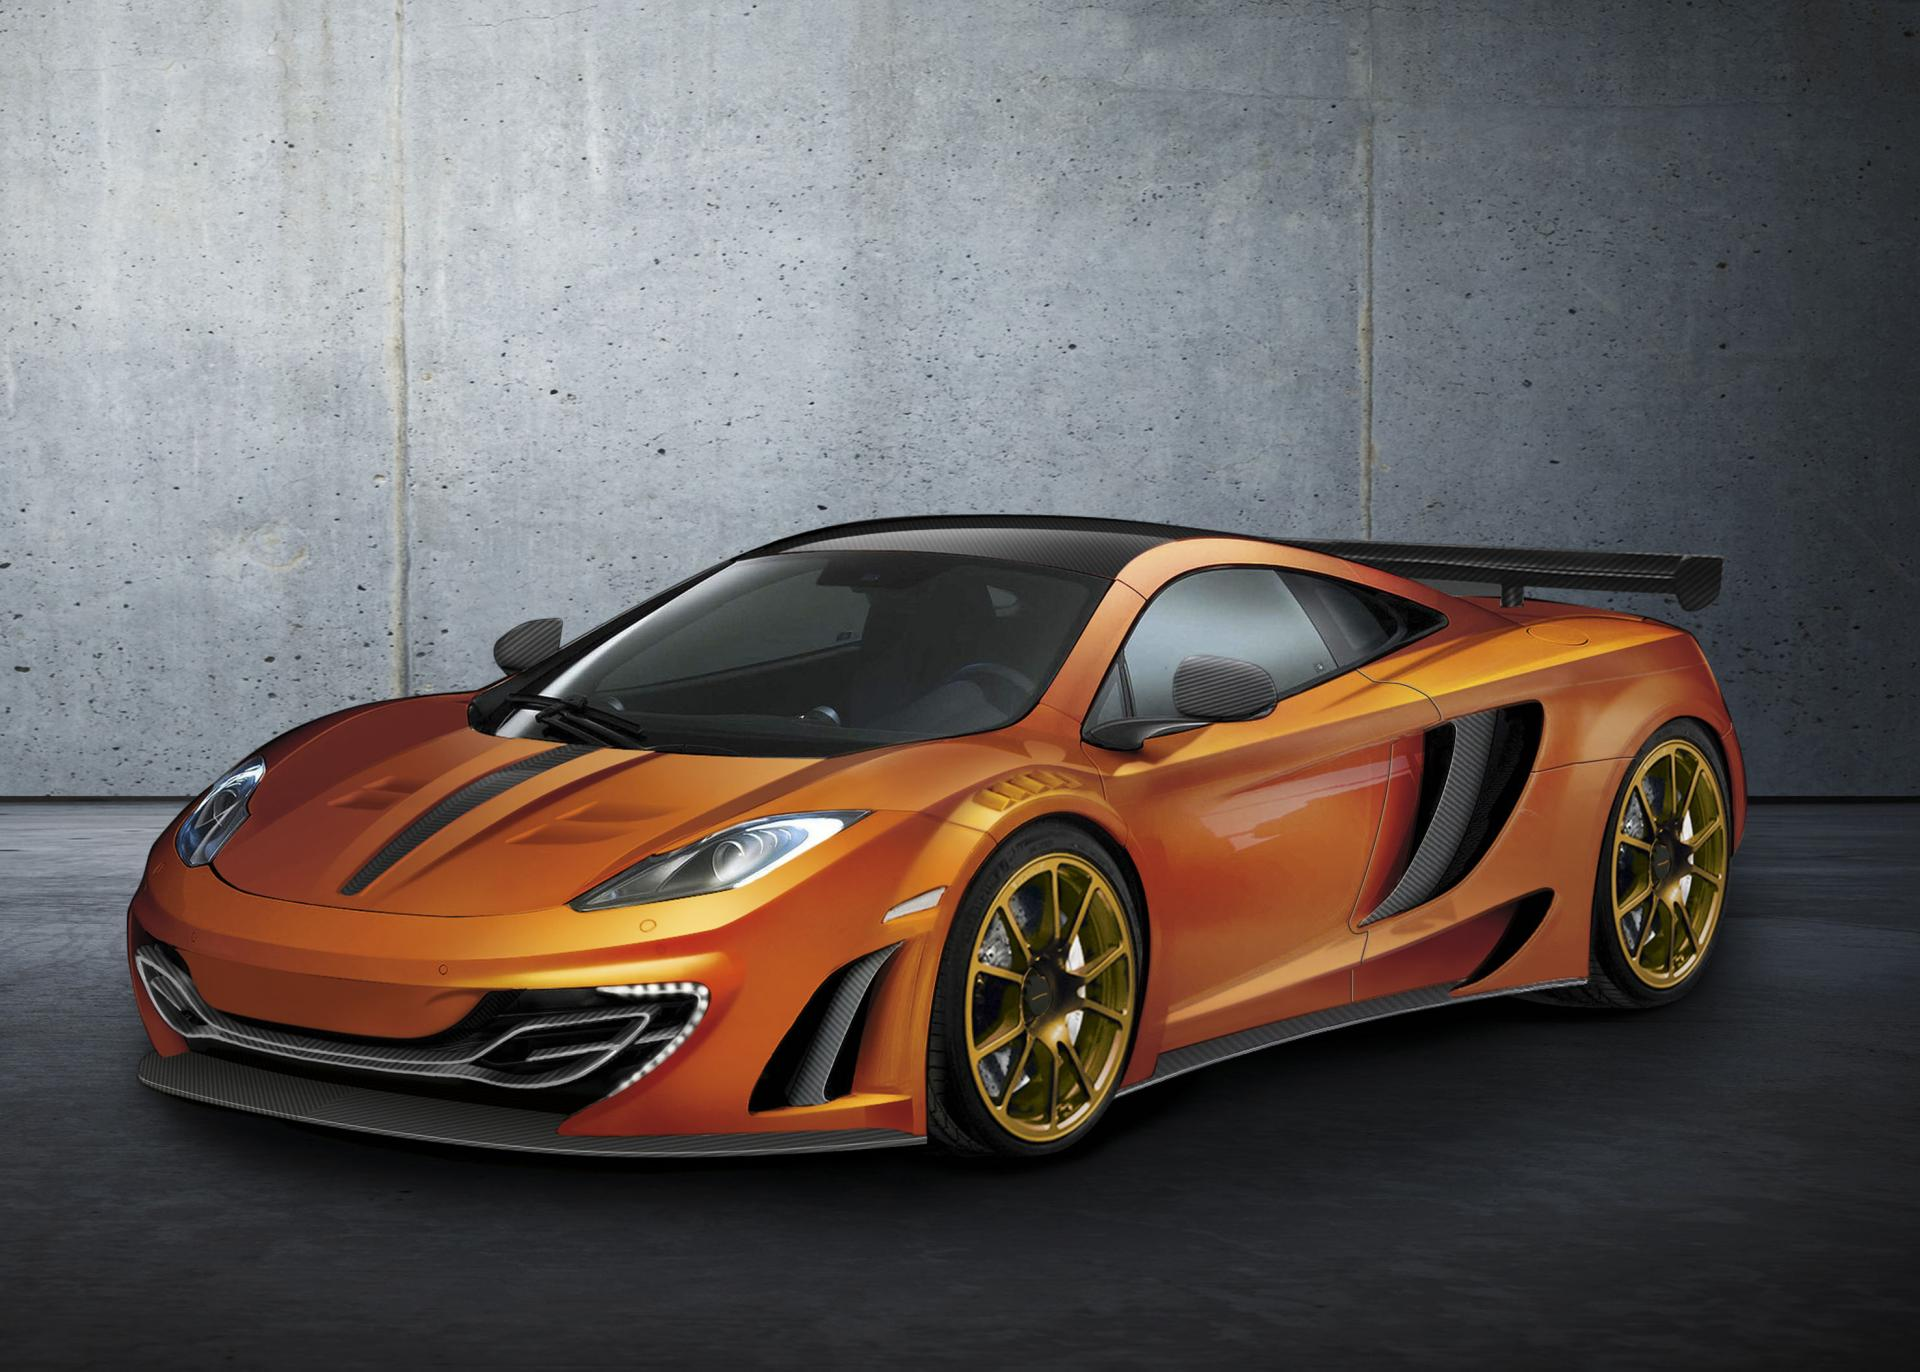 2012 mansory mp4-12c news and information | conceptcarz